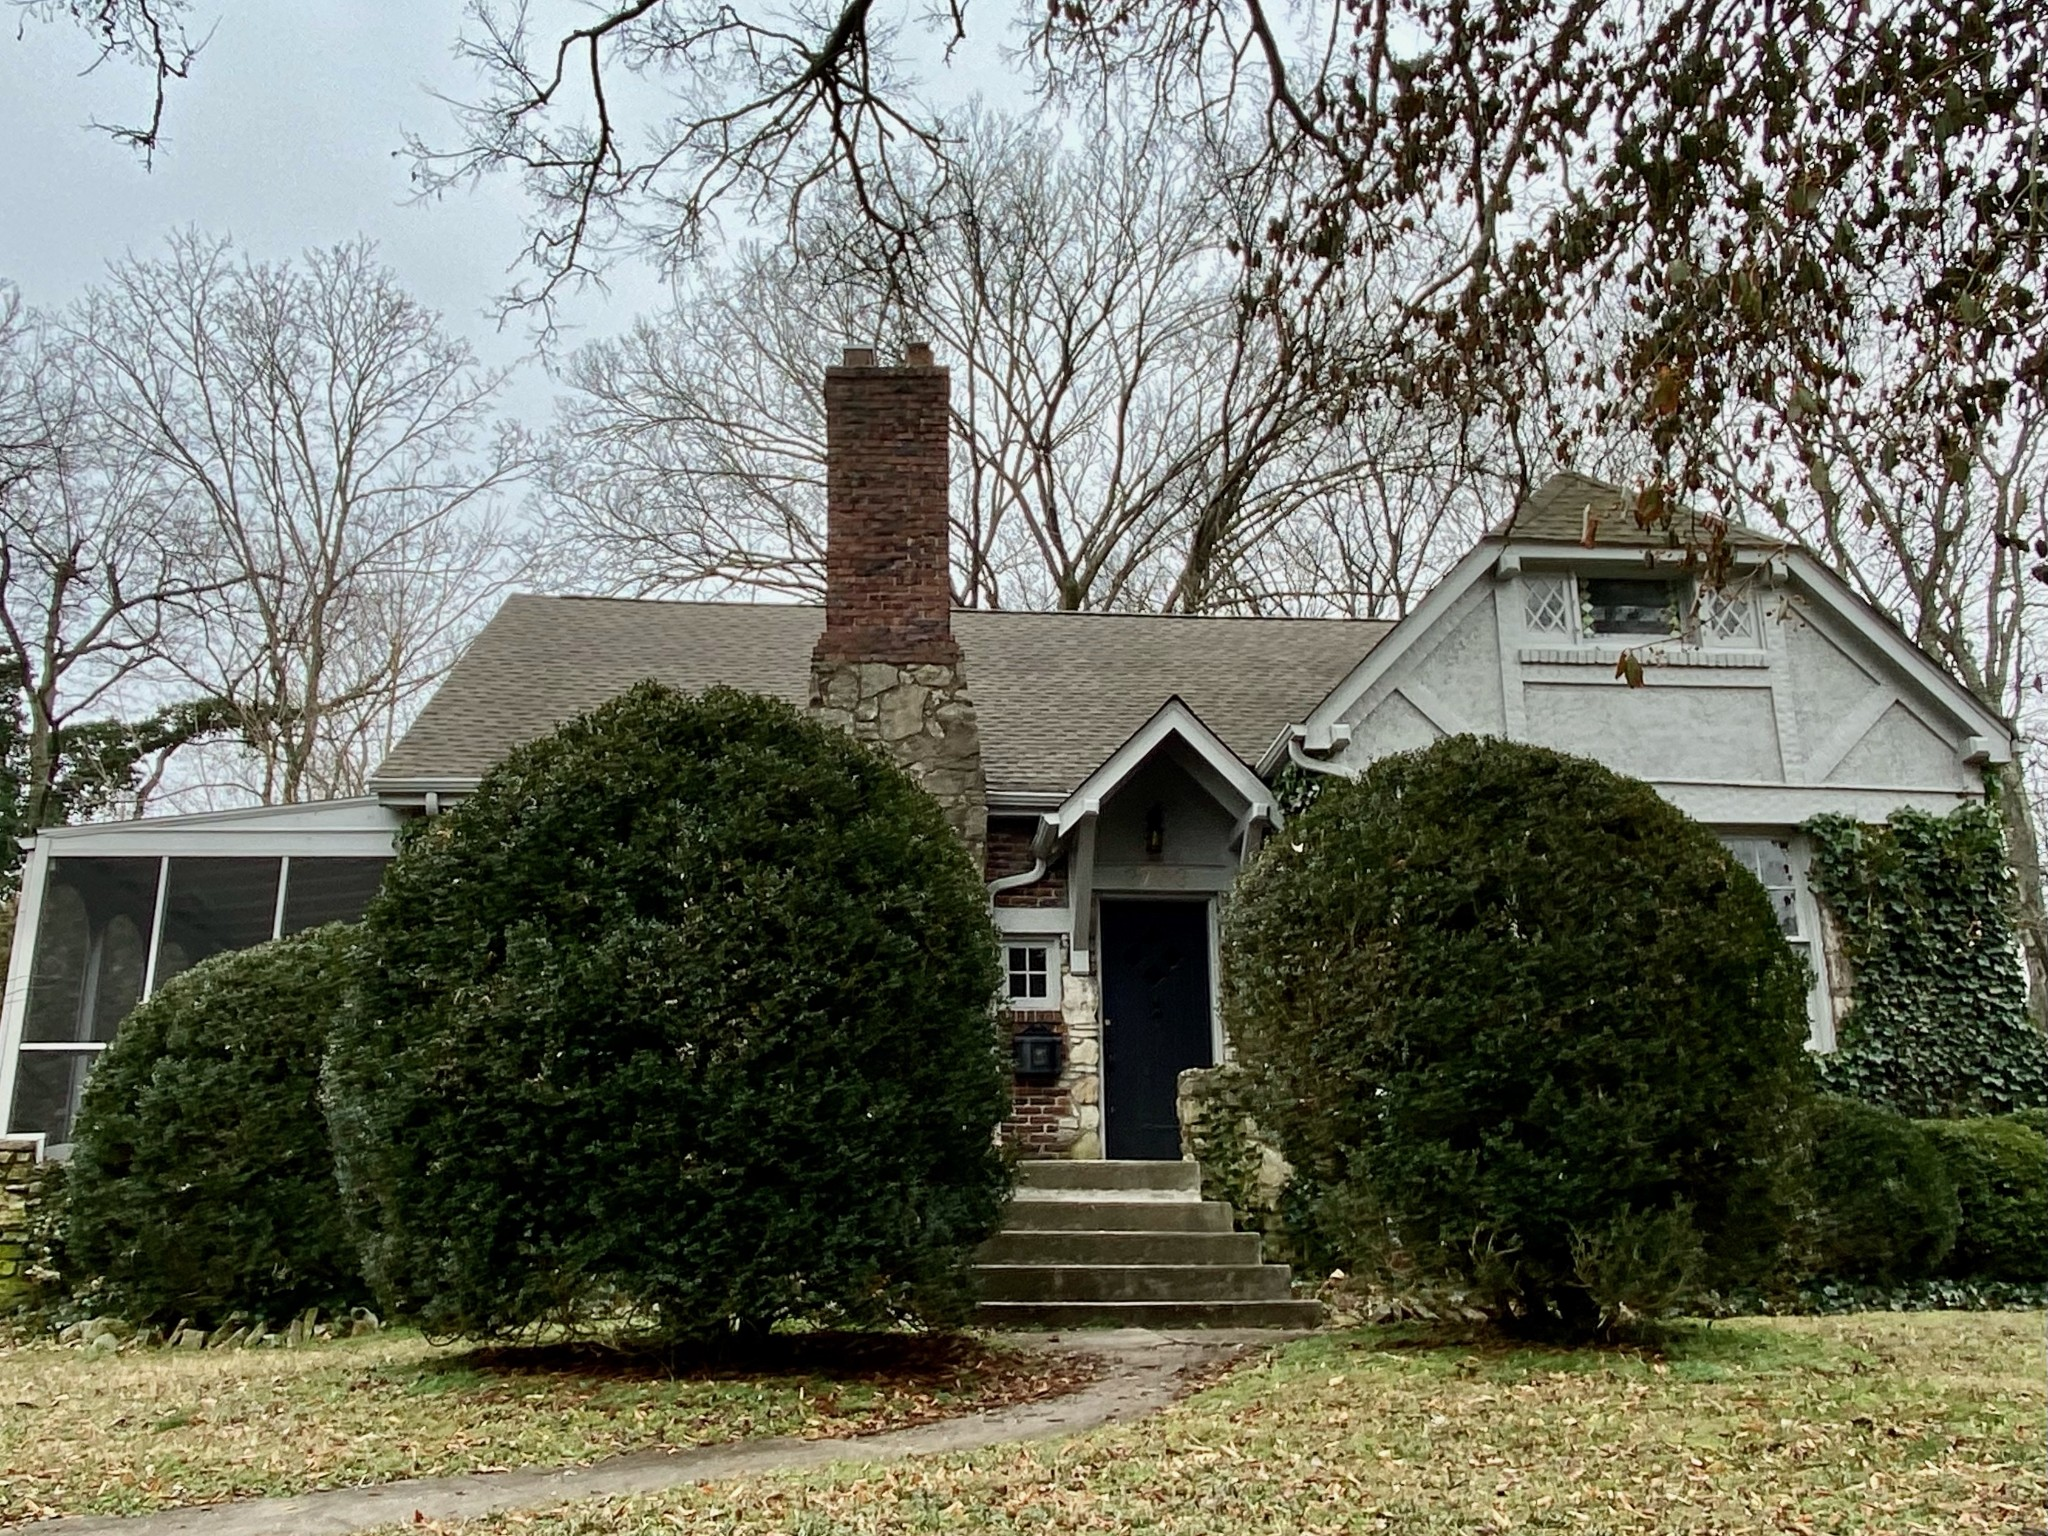 Renovated 1930's Tudor in Historic Richland/West End. Enjoy this walkable neighborhood with easy access to Sylvan Park restaurants and shopping, McCabe golf course, the Richland Greenway, and so much more. Easy access to I-440 makes this location convenient to most of the Nashville neighborhoods!  Large double lot leaves plenty of room to expand the house and add a pool or garage to make this home suit all of yours needs. The screened in porch is perfect for enjoying this crisp fall weather!